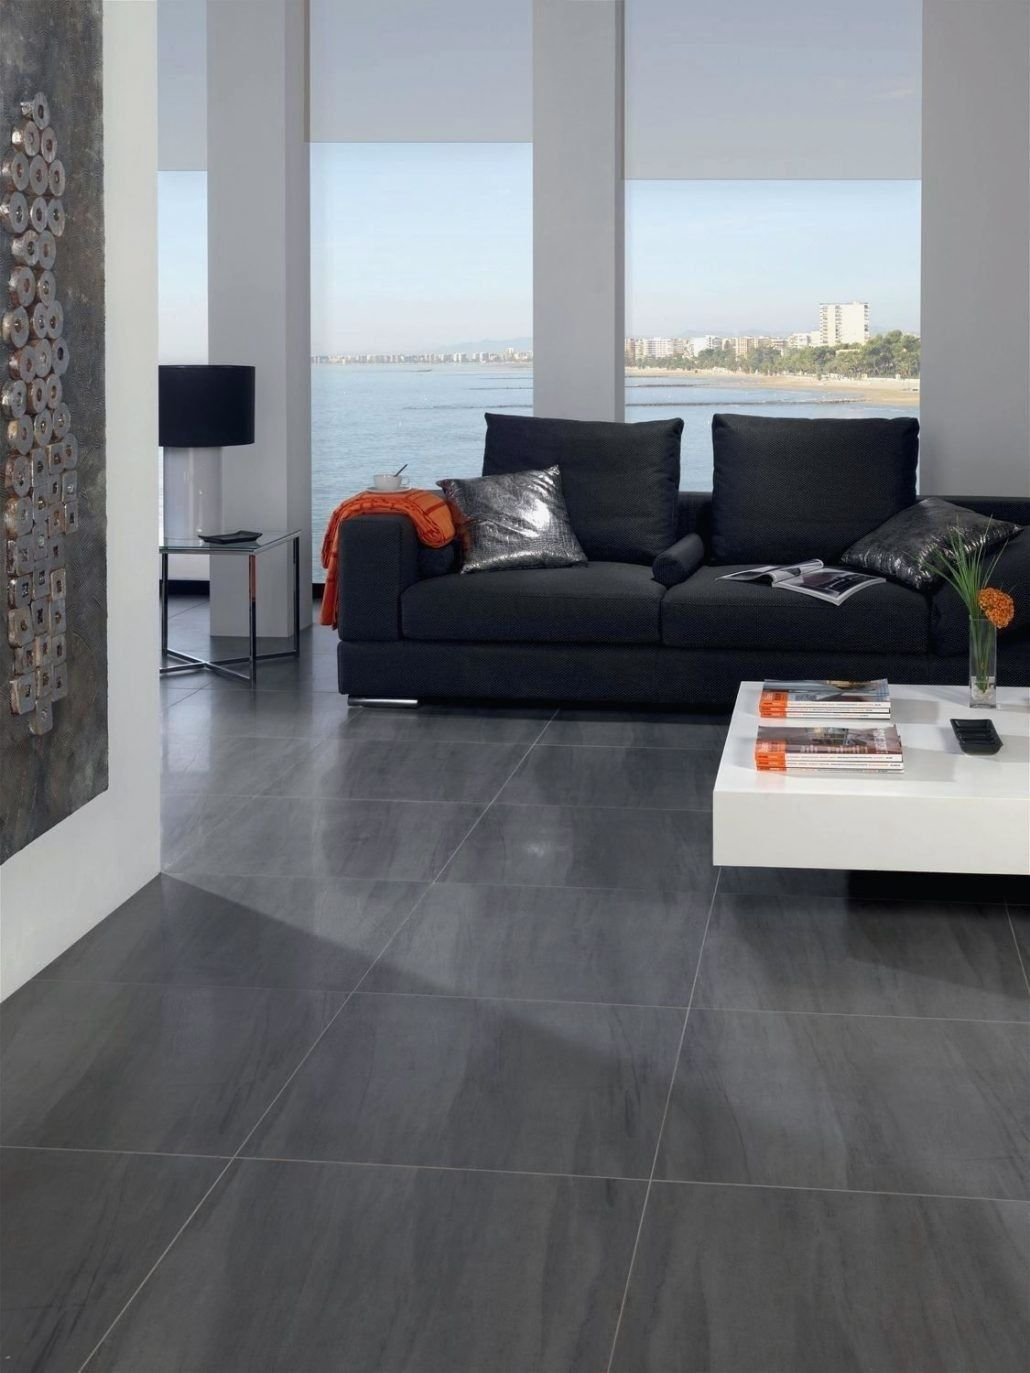 16 Floor Tile Design In Nigeria In 2020 Living Room Tiles